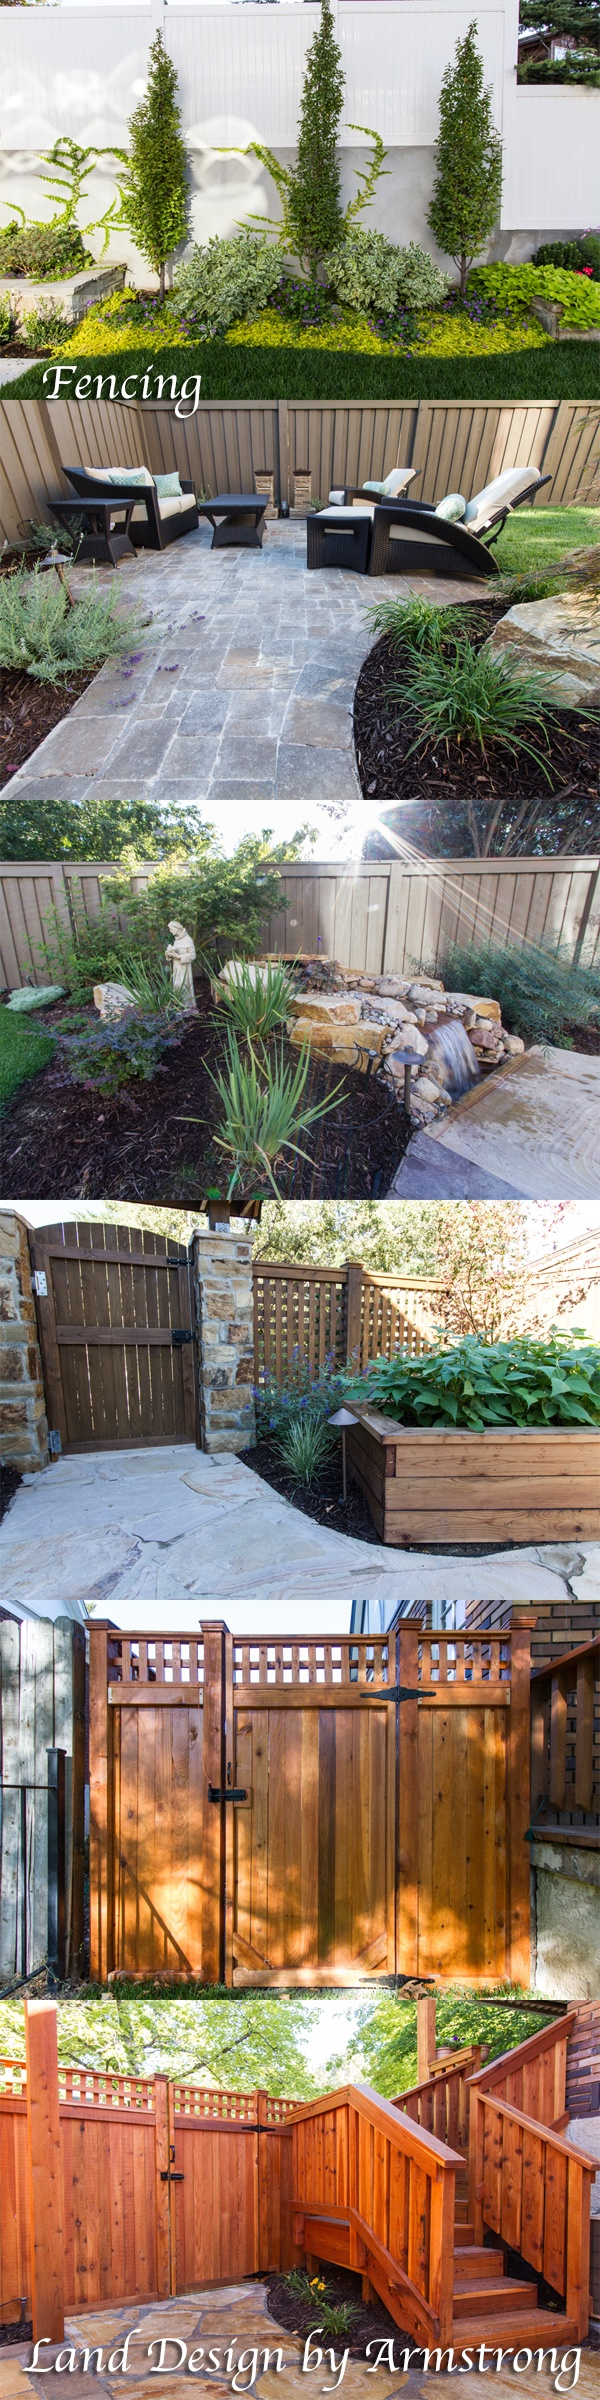 Land Design By Armstrong Creates Beautiful Fencing To Enclose Your Landscape  Design In The Salt Lake. Landscaping IdeasBackyard ...